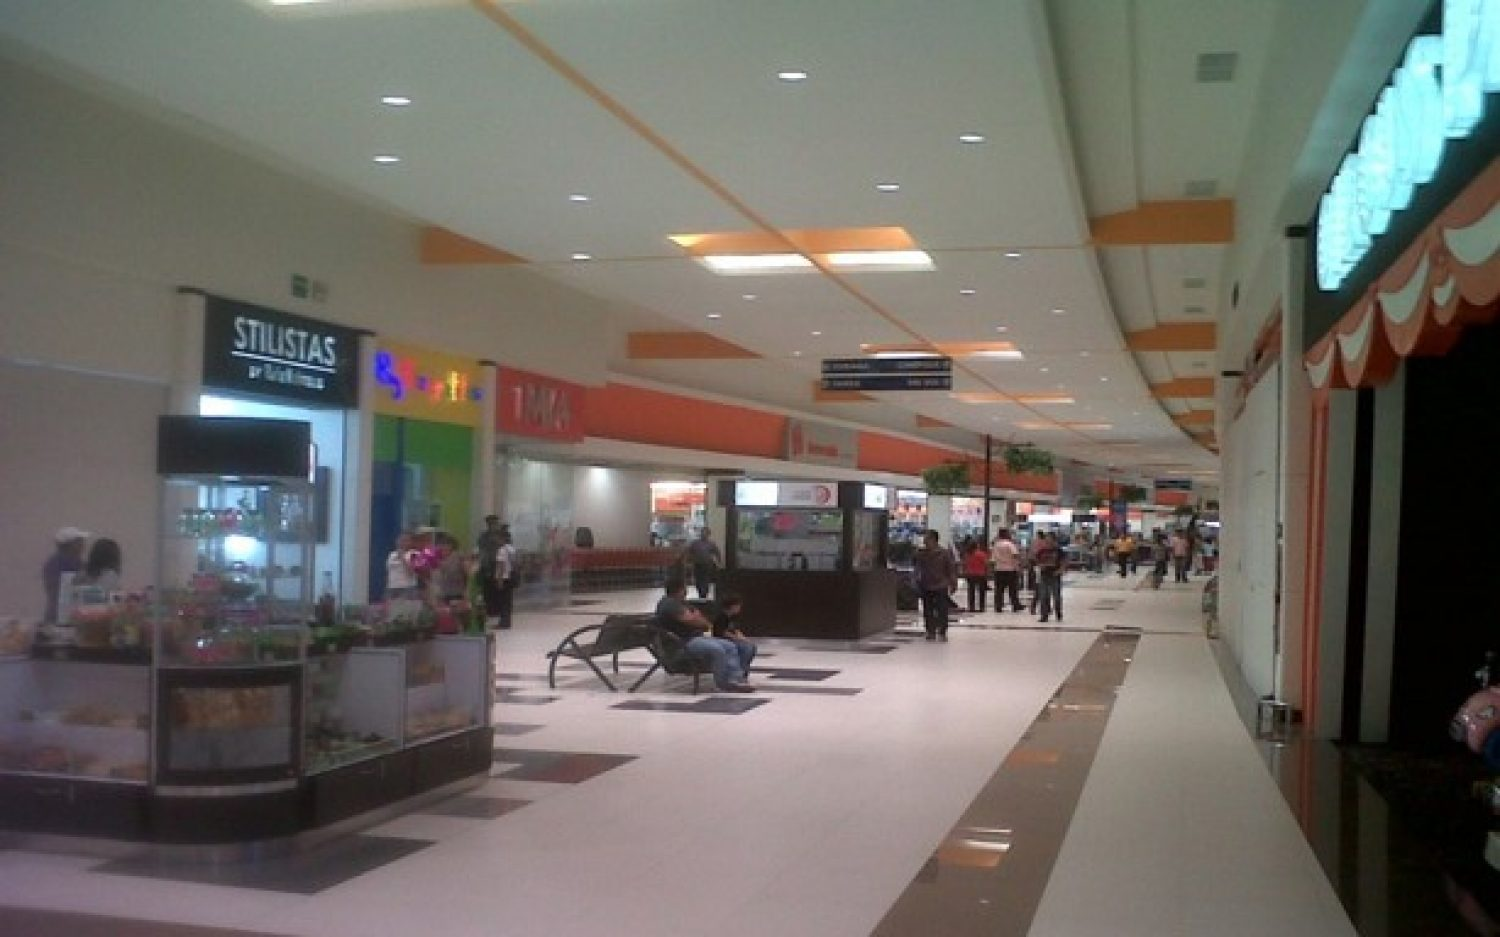 Co-Plaza Sendero Villahermosa (63)